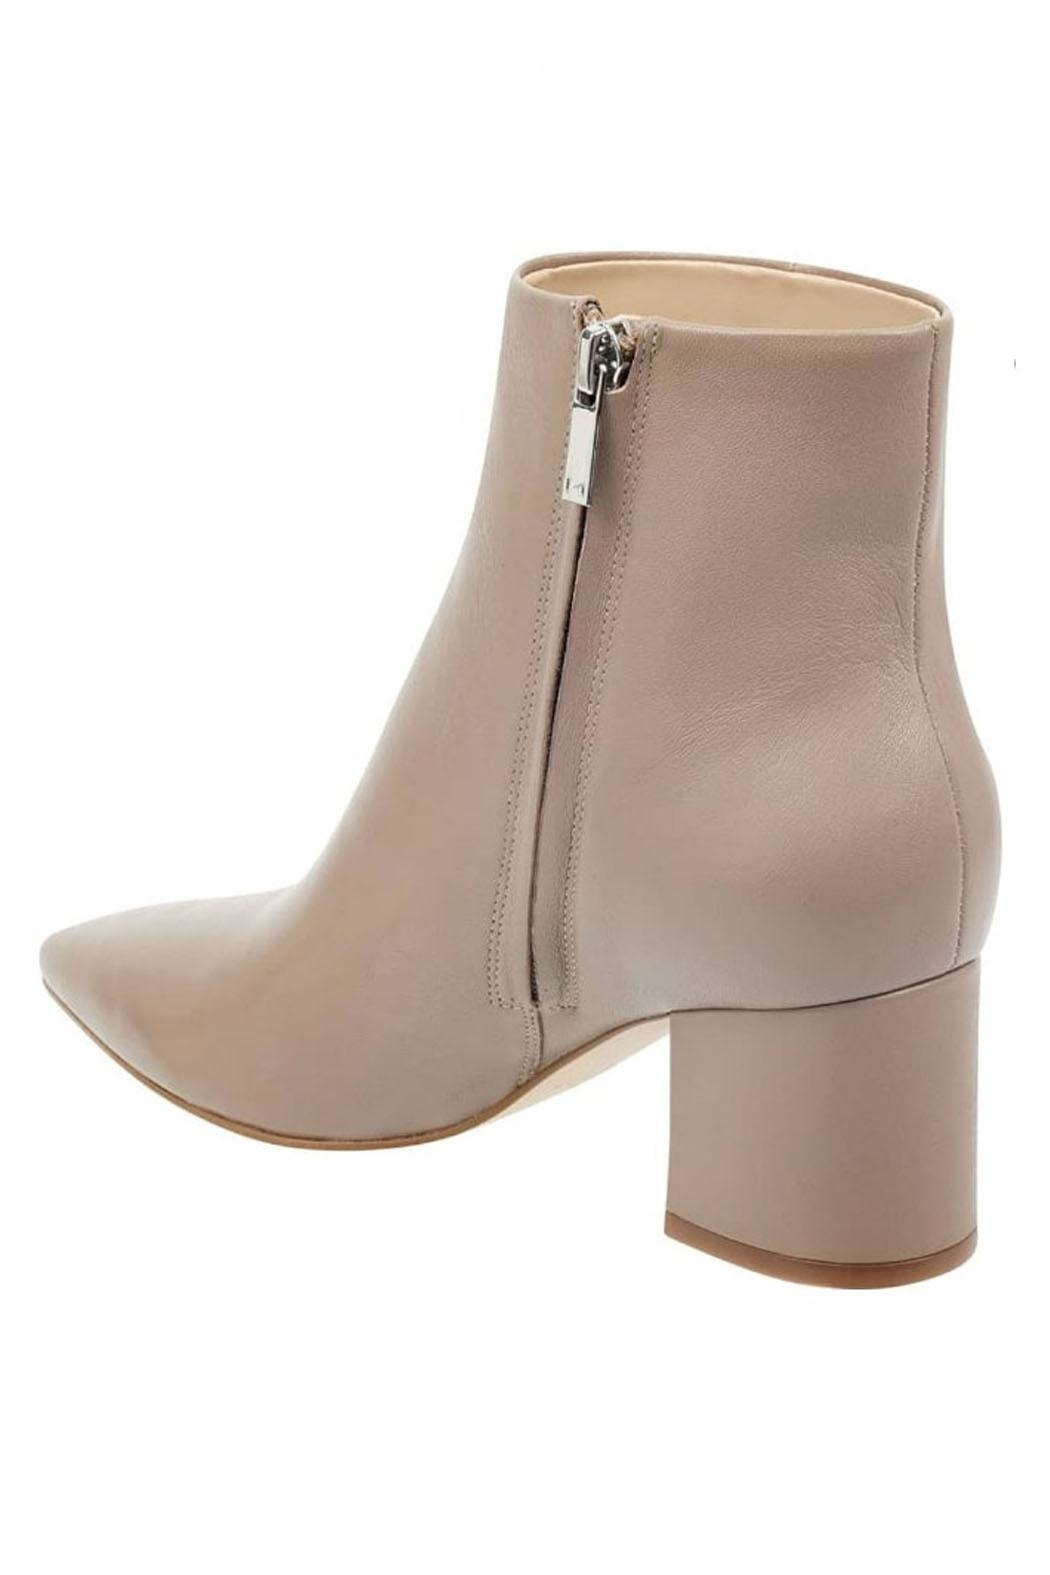 Marc Fisher LTD Trendy Leather Bootie - Front Full Image